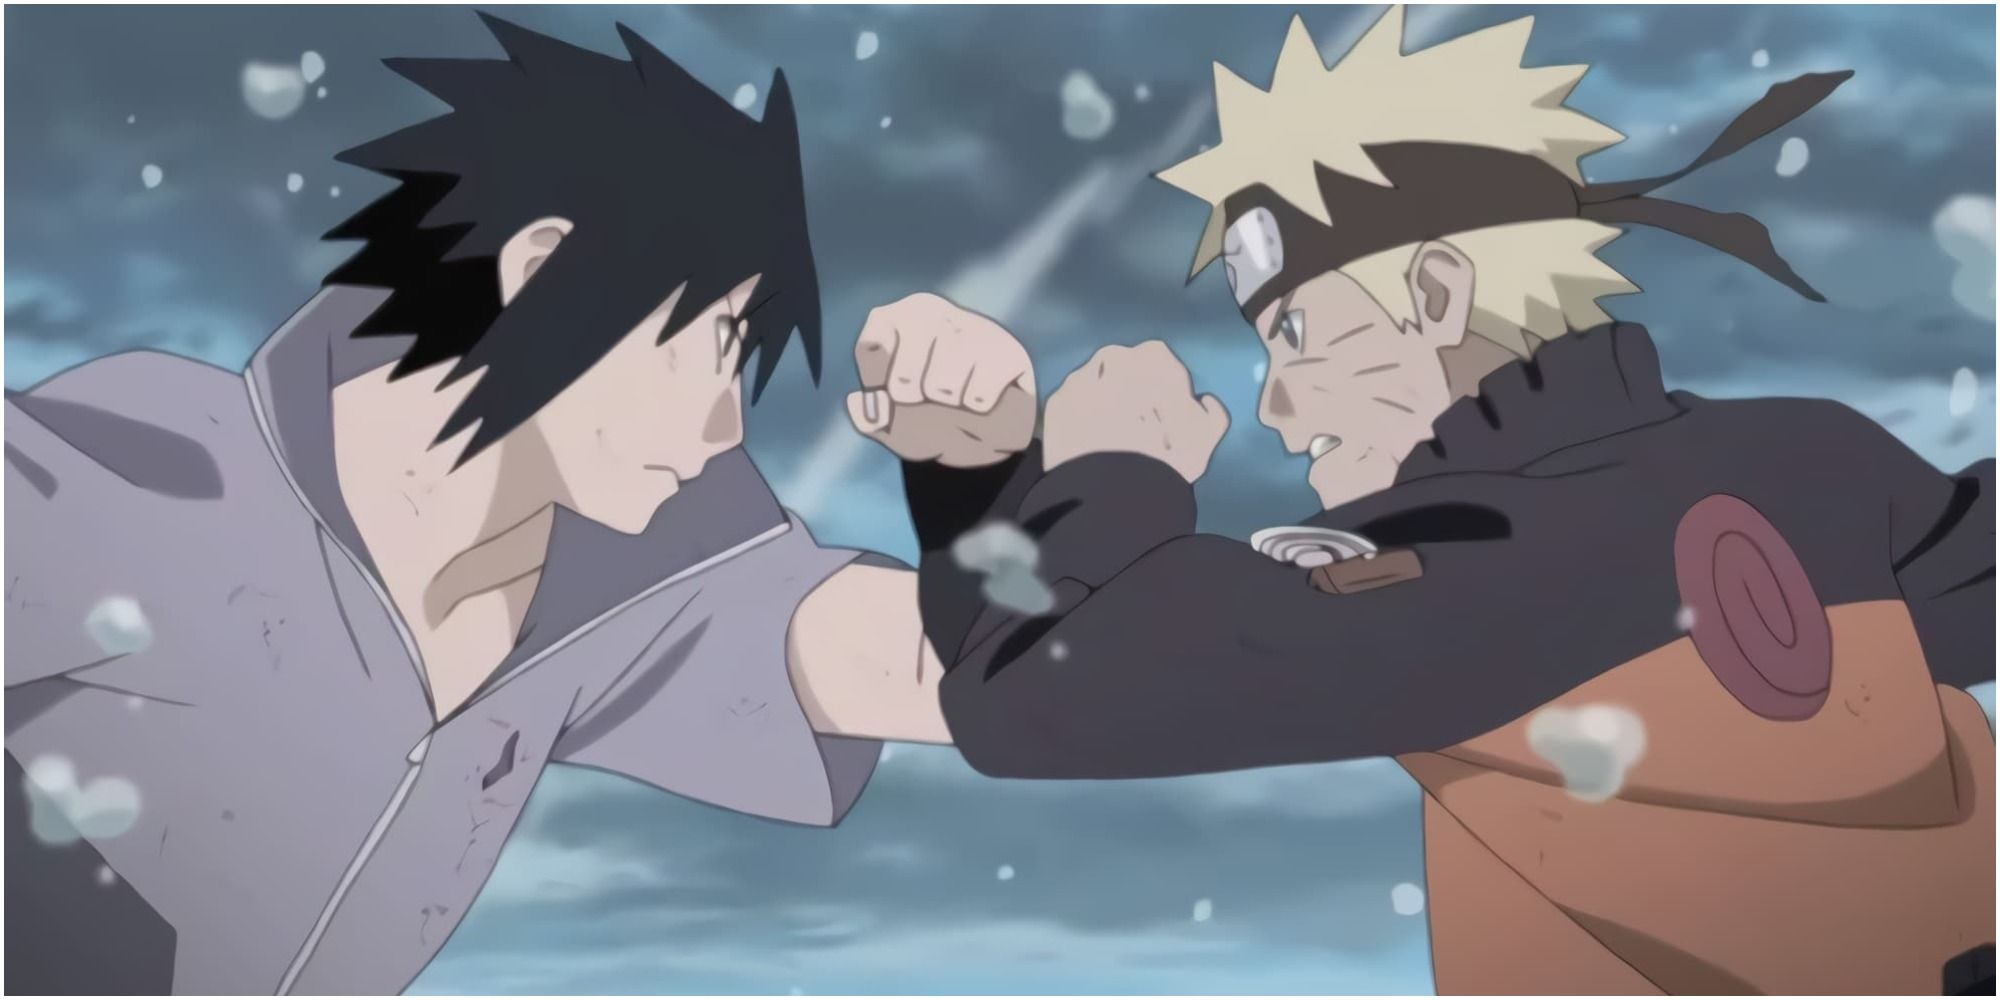 Naruto Shippuden: The Main Characters, Ranked From Worst ...